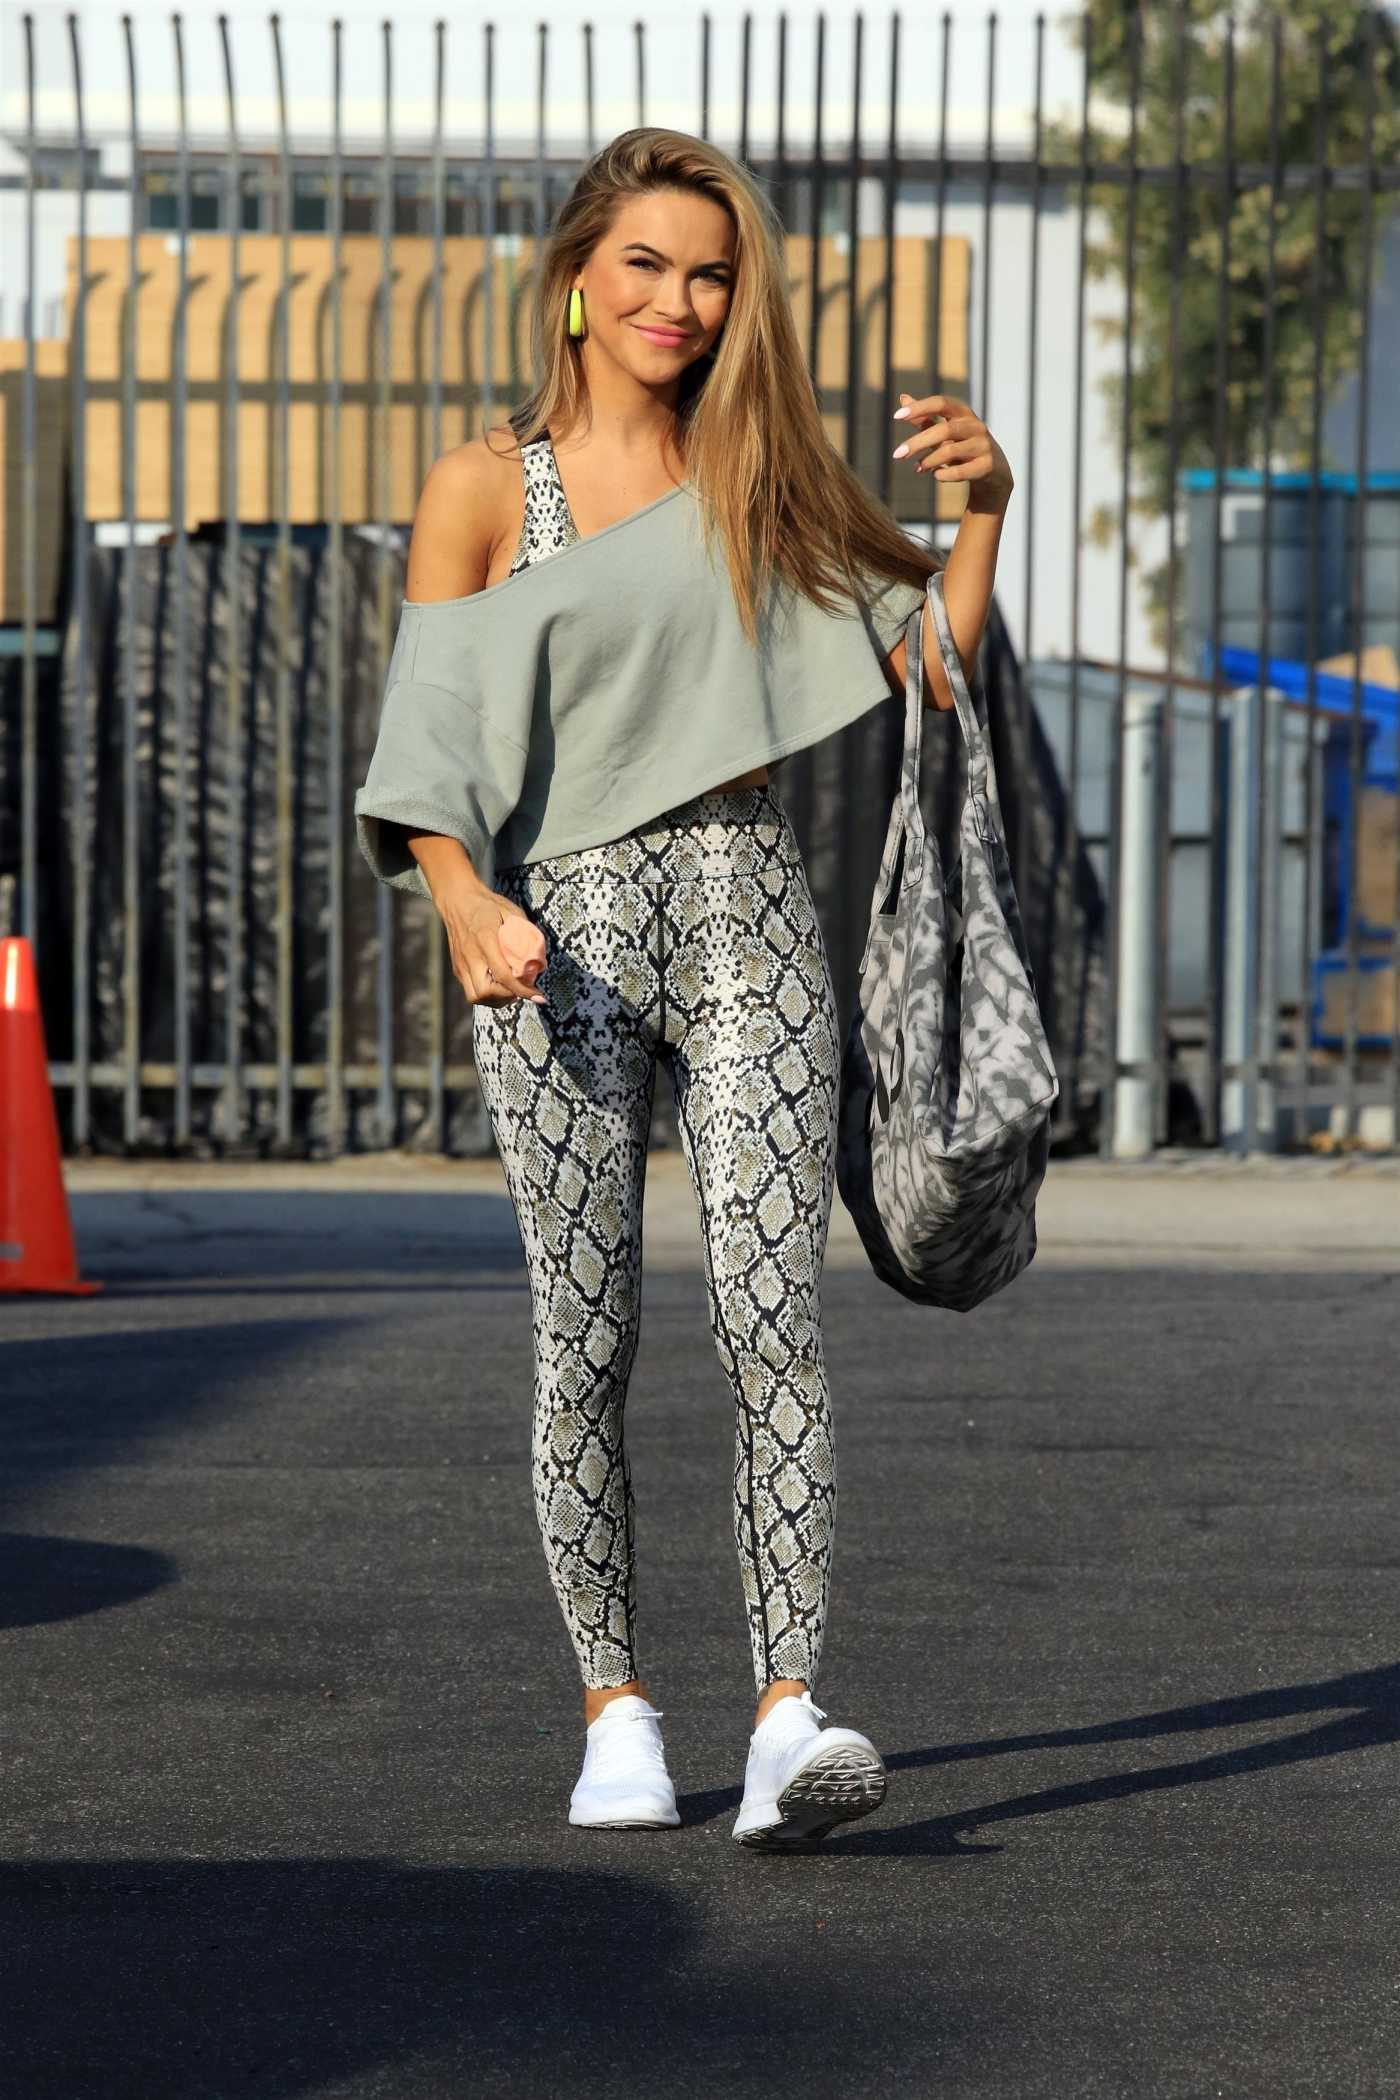 Chrishell Stause in a Snakeskin Print Leggings Arrives at the DWTS Studio in Los Angeles 10/07/2020